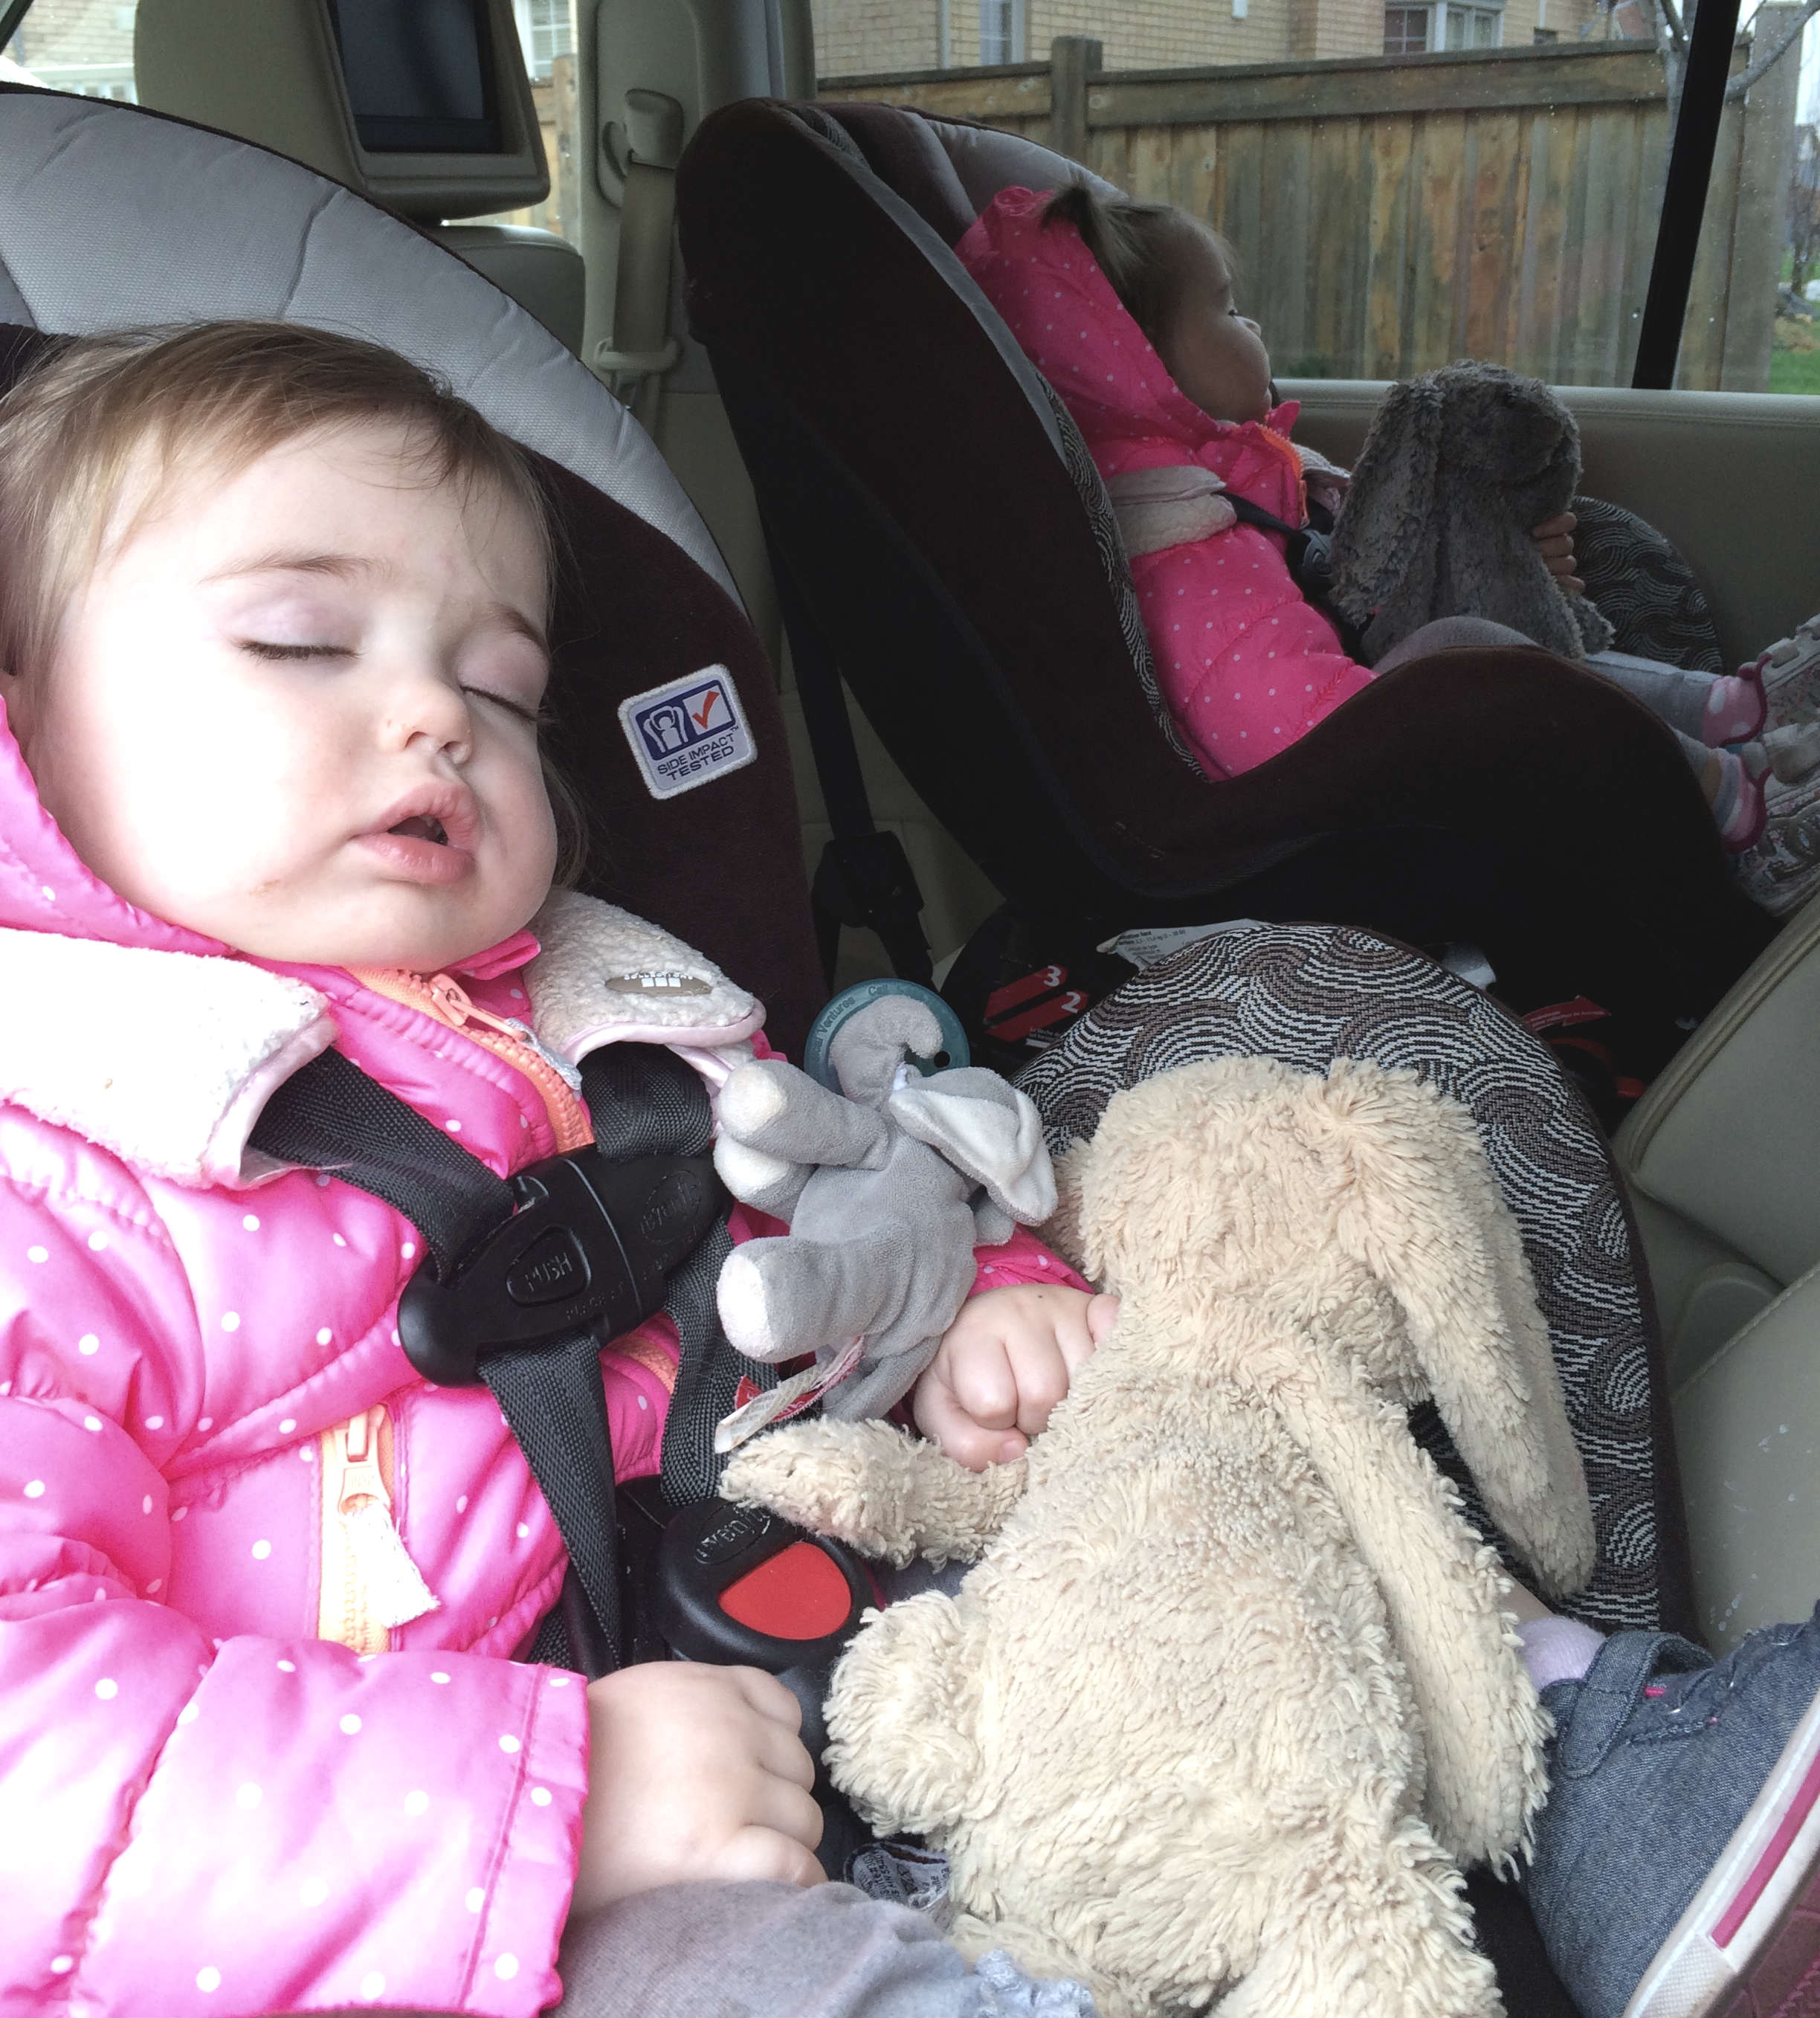 Twins tired after daycare